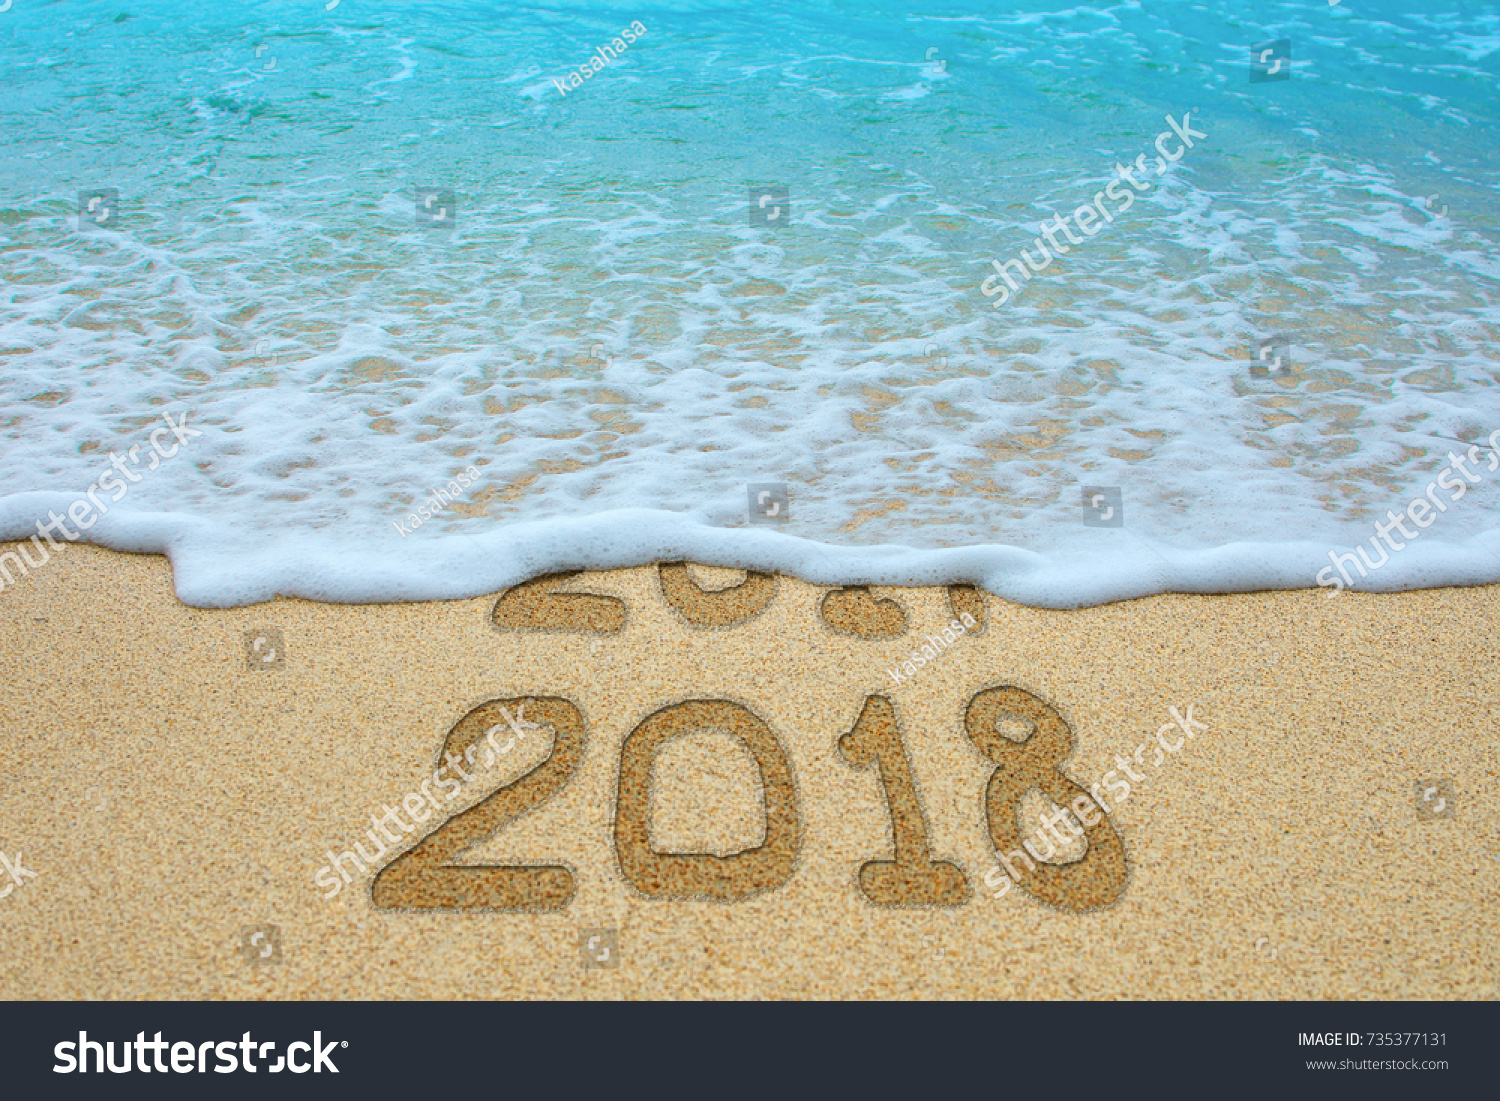 2017 And 2018 Written On Sandy Beach, The Wave Is Covering 2017. New Year